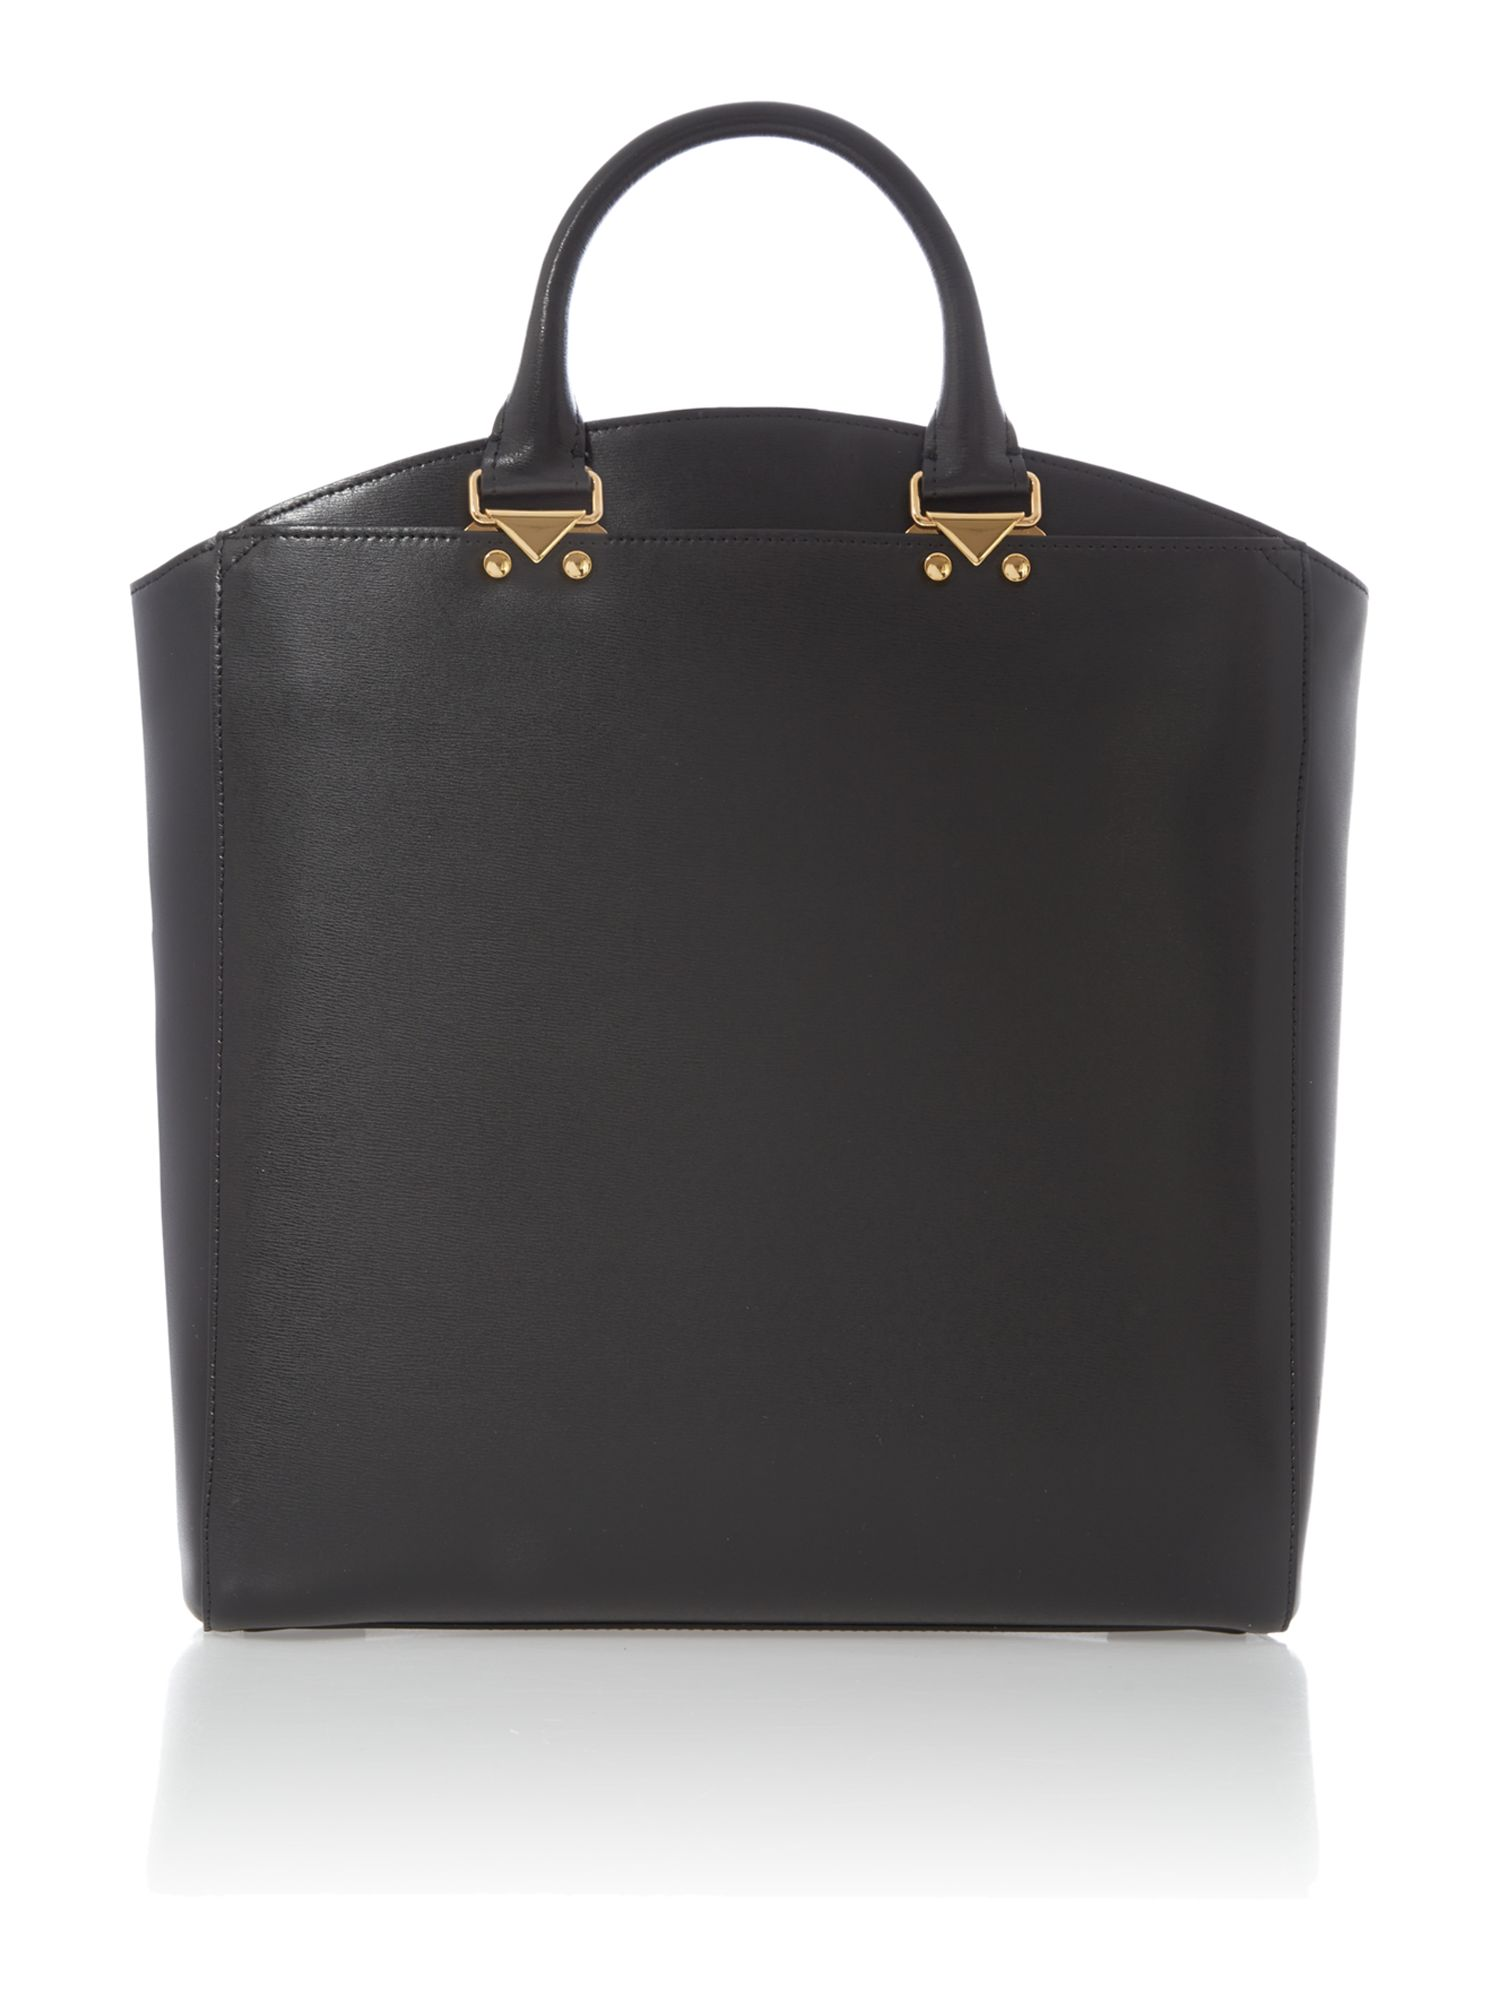 Black large leather fashion logo tote bag